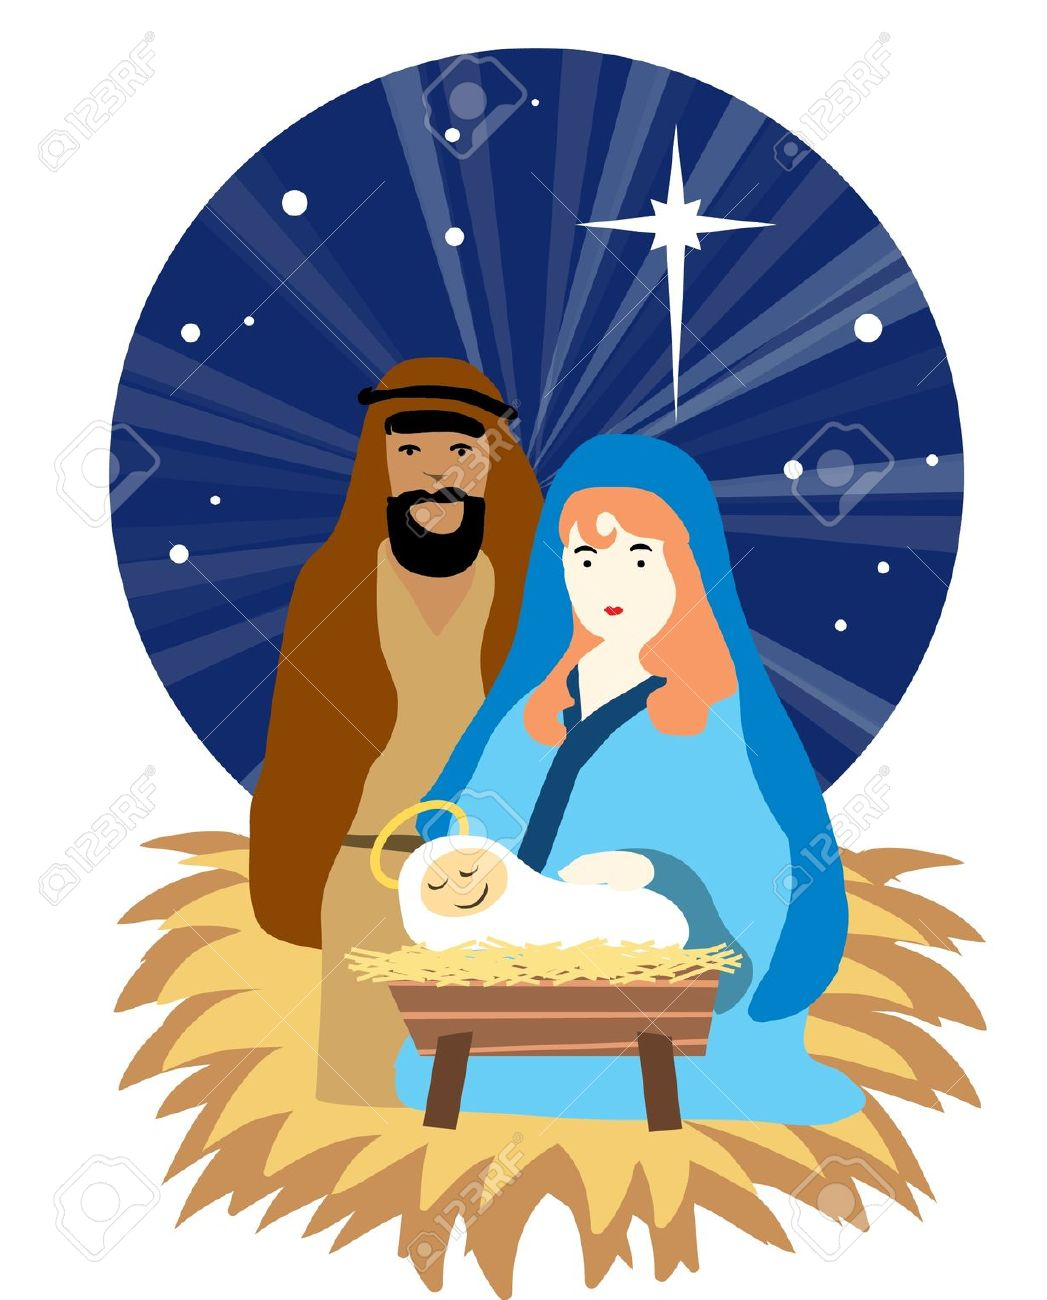 Christmas Nativity Scene Clipart   Free download on ClipArtMag